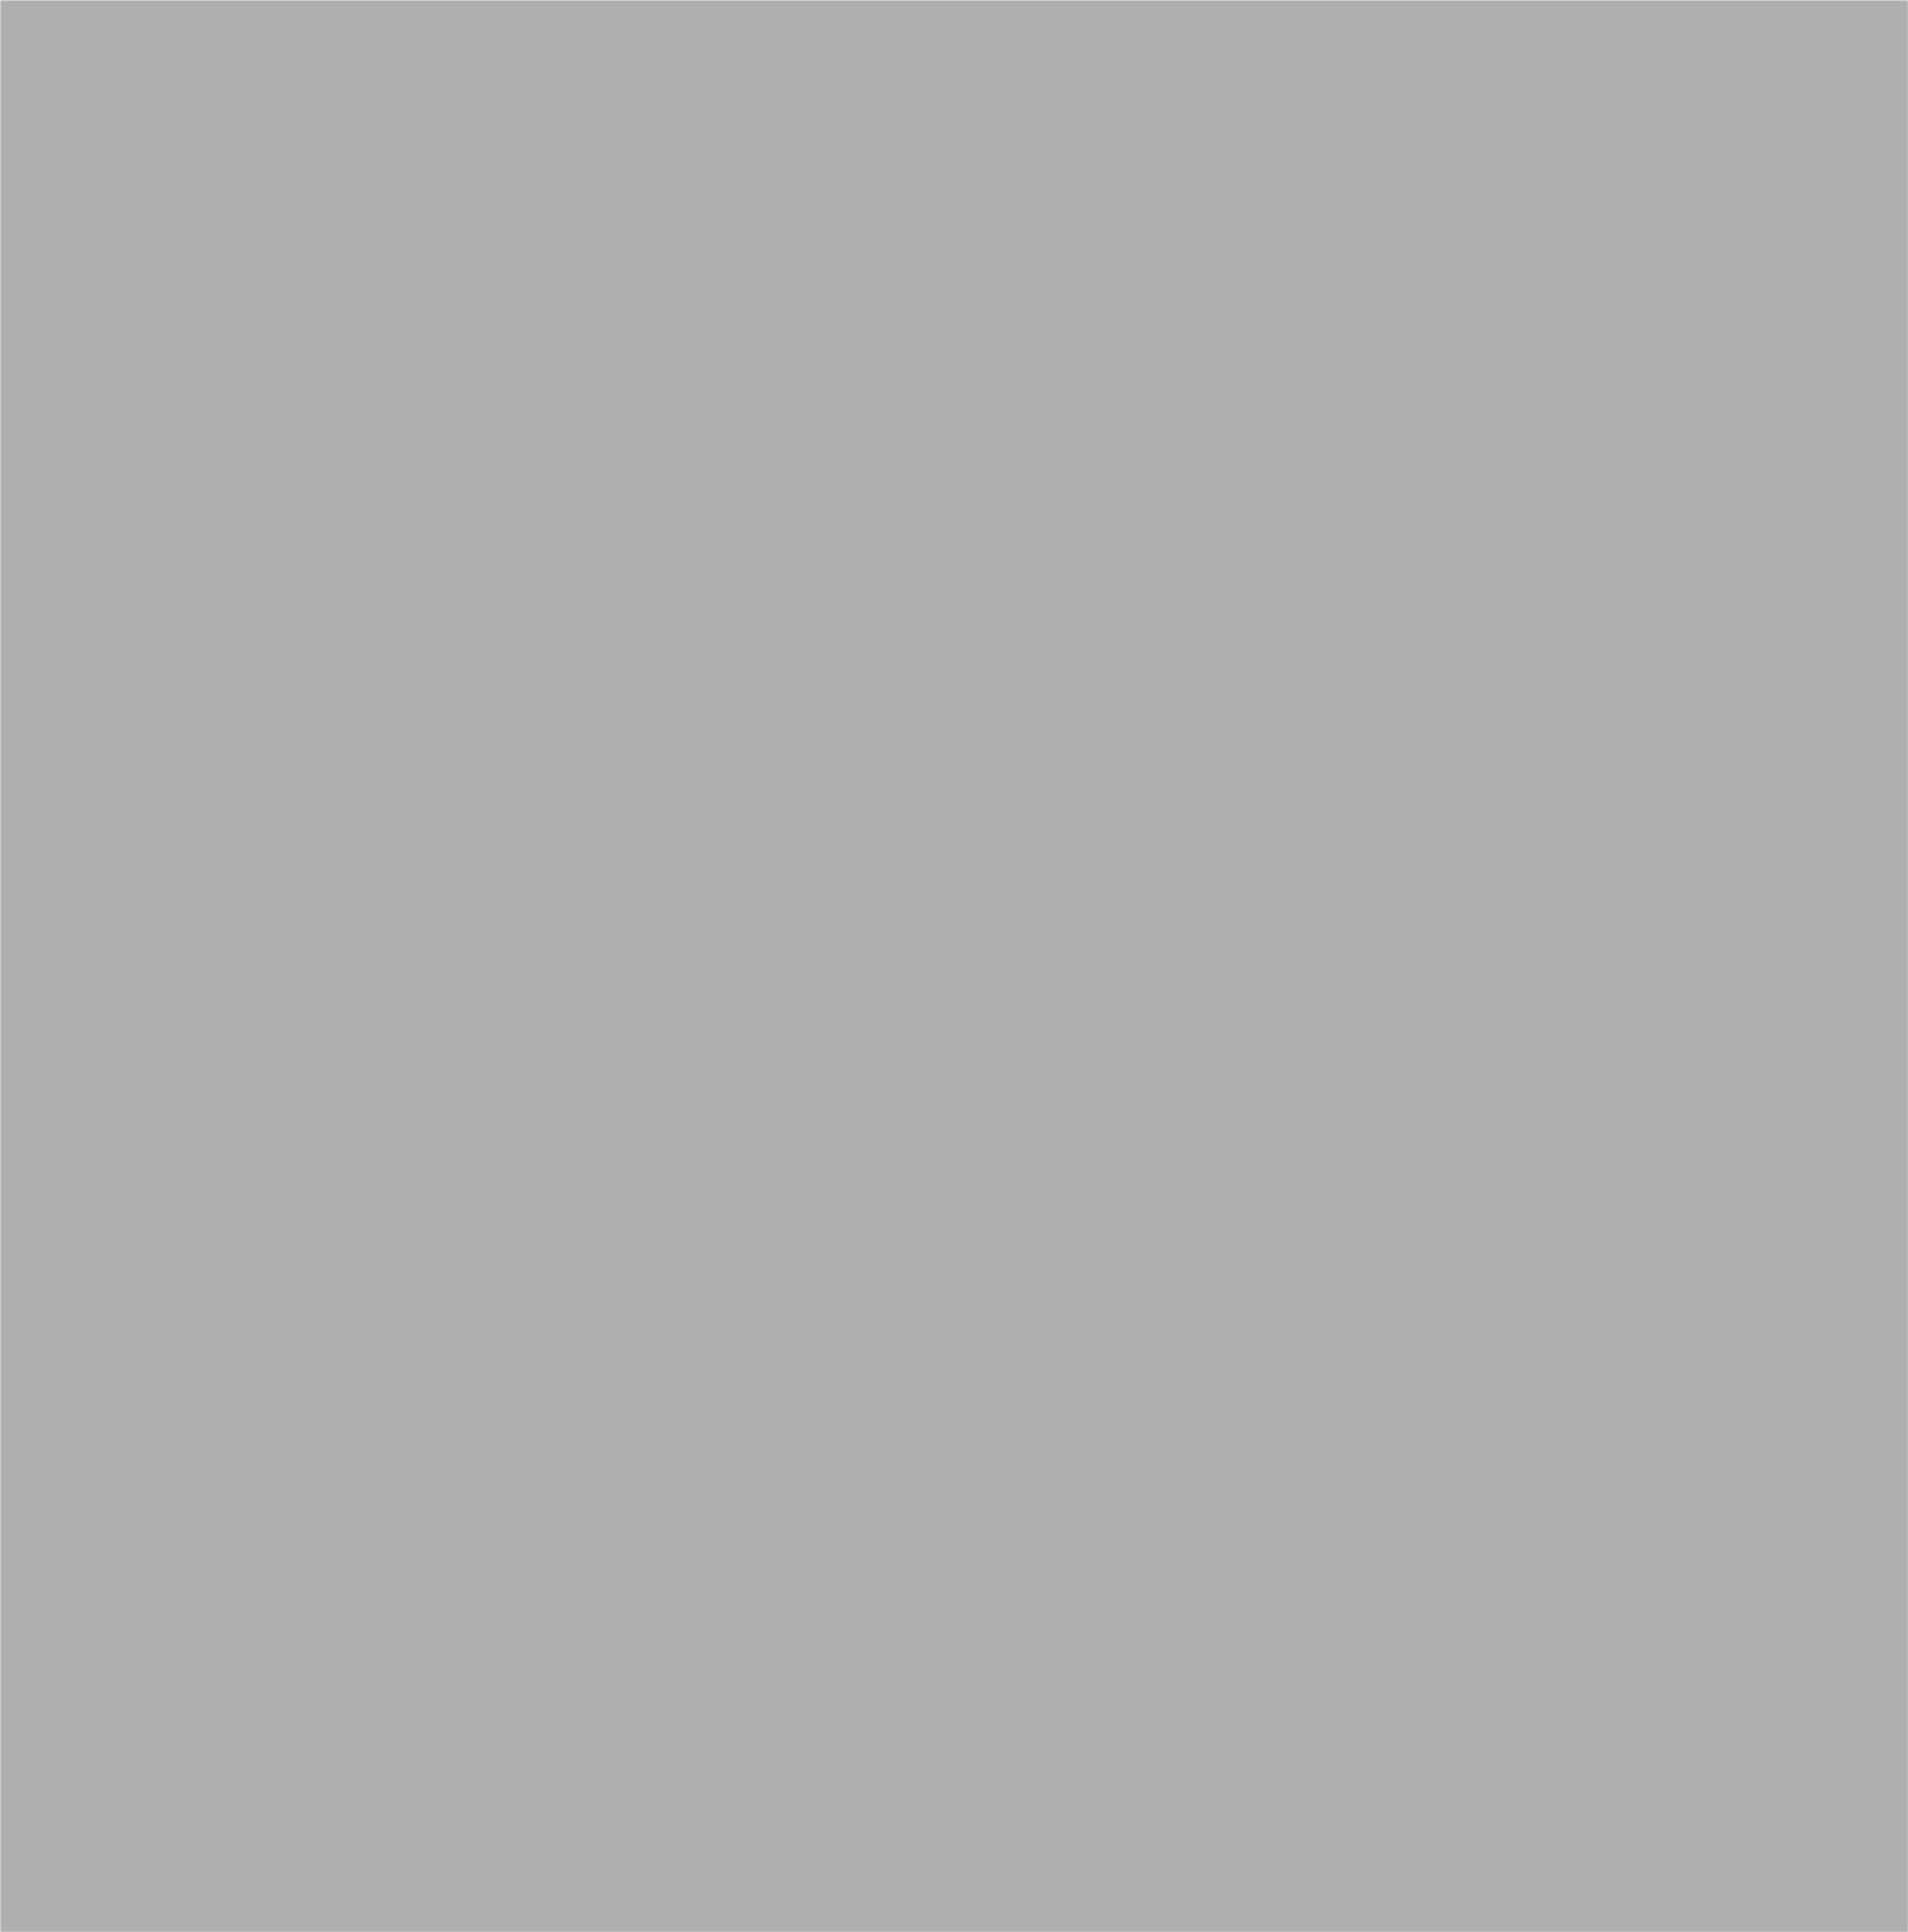 Color sample of the web's medium gray